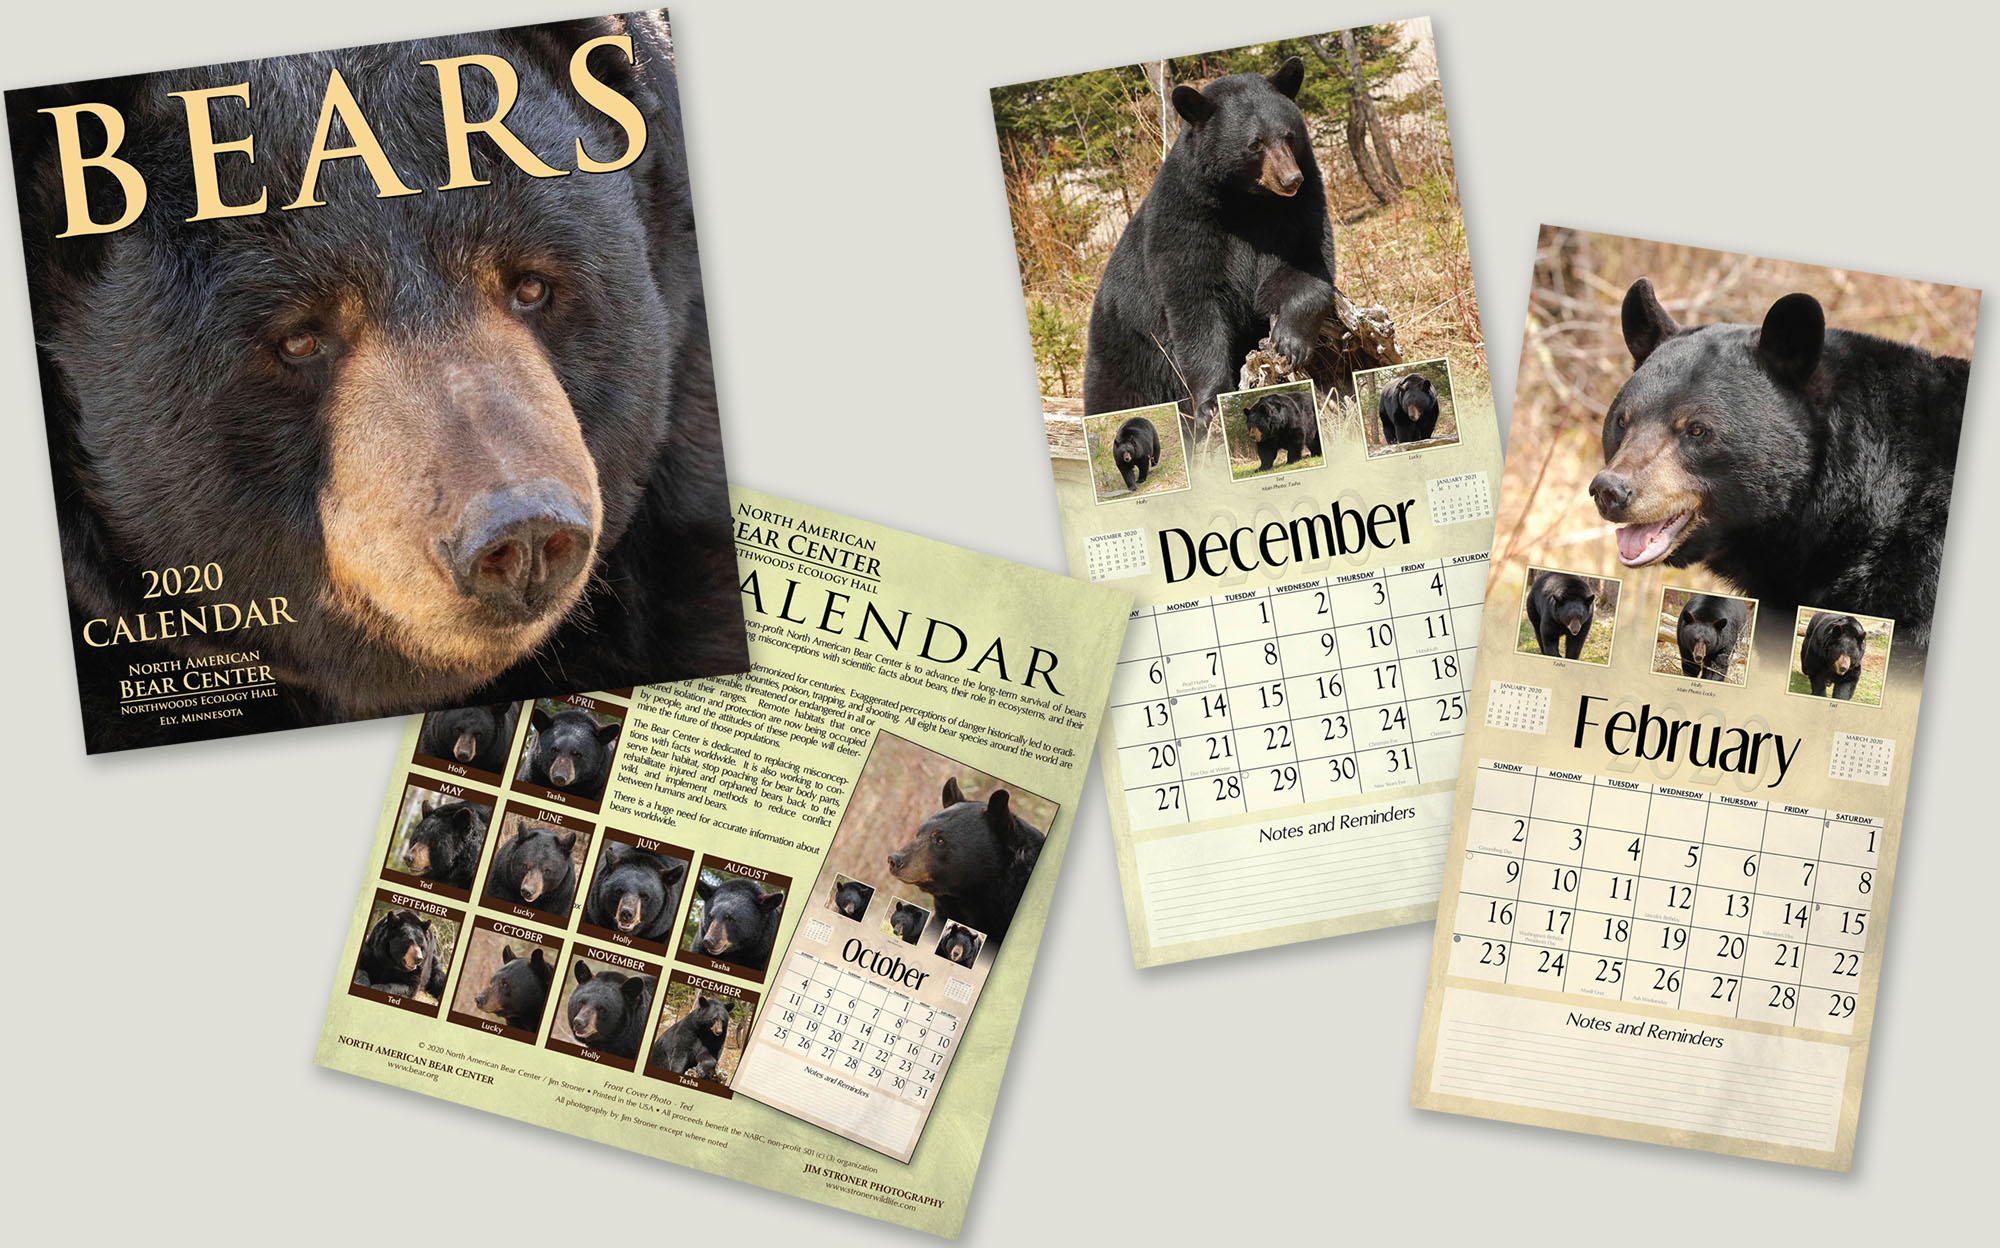 Wildlife Christmas Cards 2020 2020 Calendars and Christmas Cards   UPDATE November 18, 2019